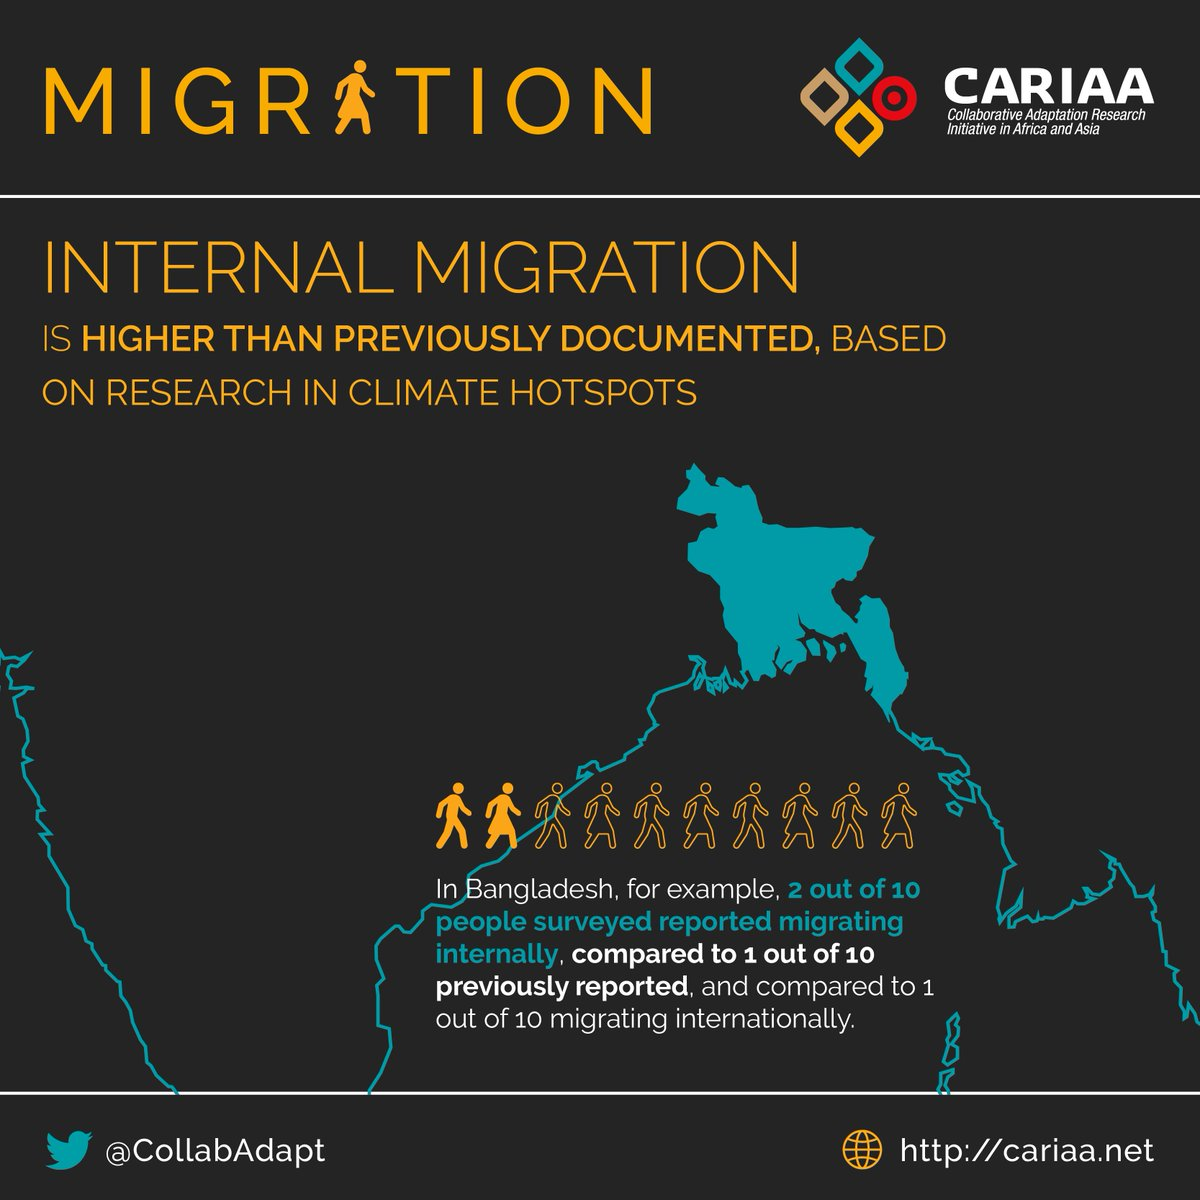 CARIAA research shows more internal (in-country) #Migration is happening due to #ClimateChange and other stressors. Find out more:  https:// bit.ly/2NsGfOM  &nbsp;   @cc_idrc @IDRC_CRDI @DECCMA @ASSARadapt @hi_aware @PRISEclimate<br>http://pic.twitter.com/FsbknCY3Ts